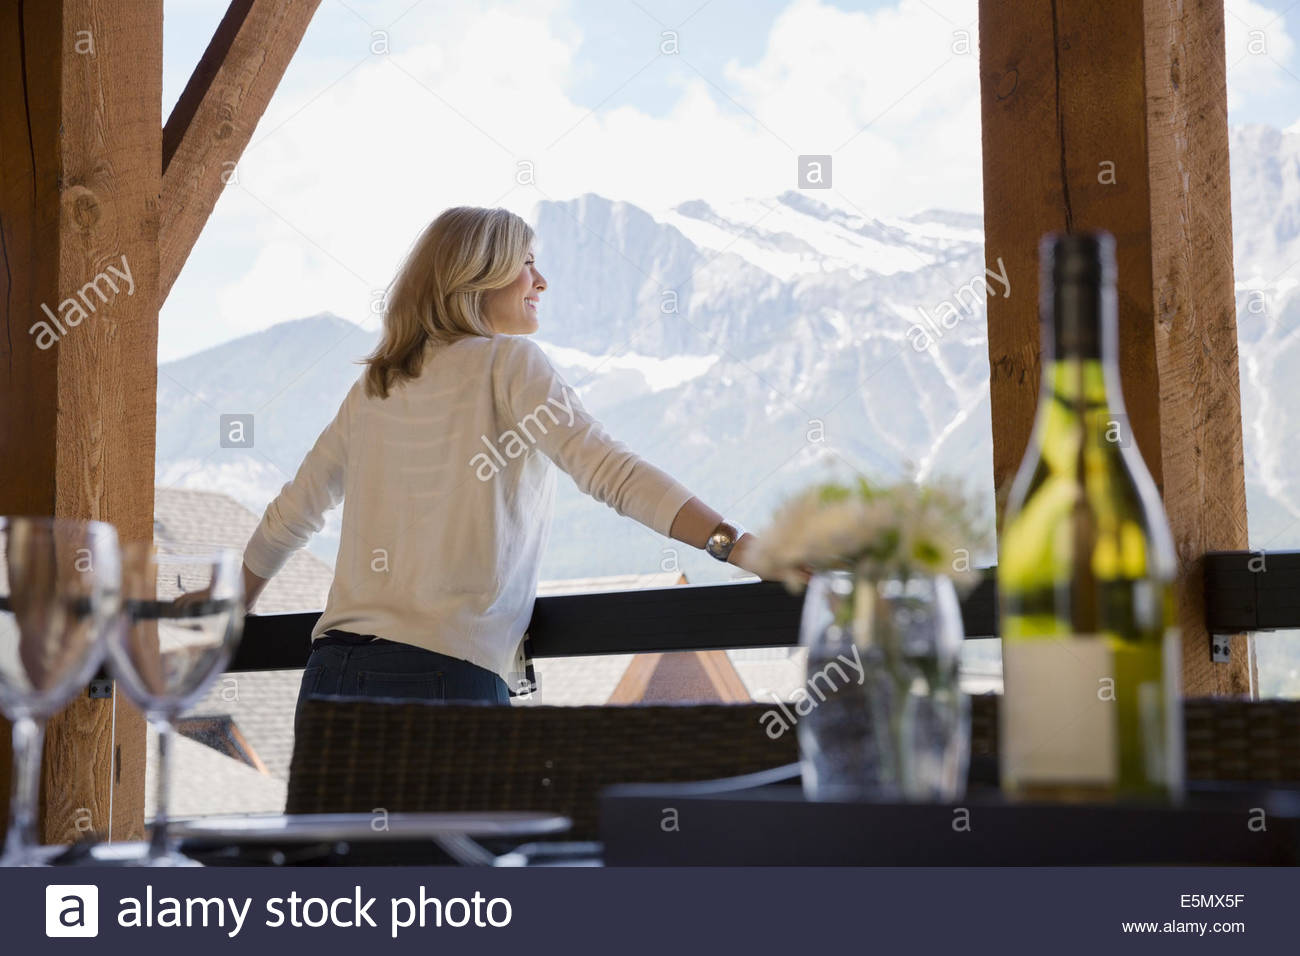 Woman on balcony looking at mountain view - Stock Image